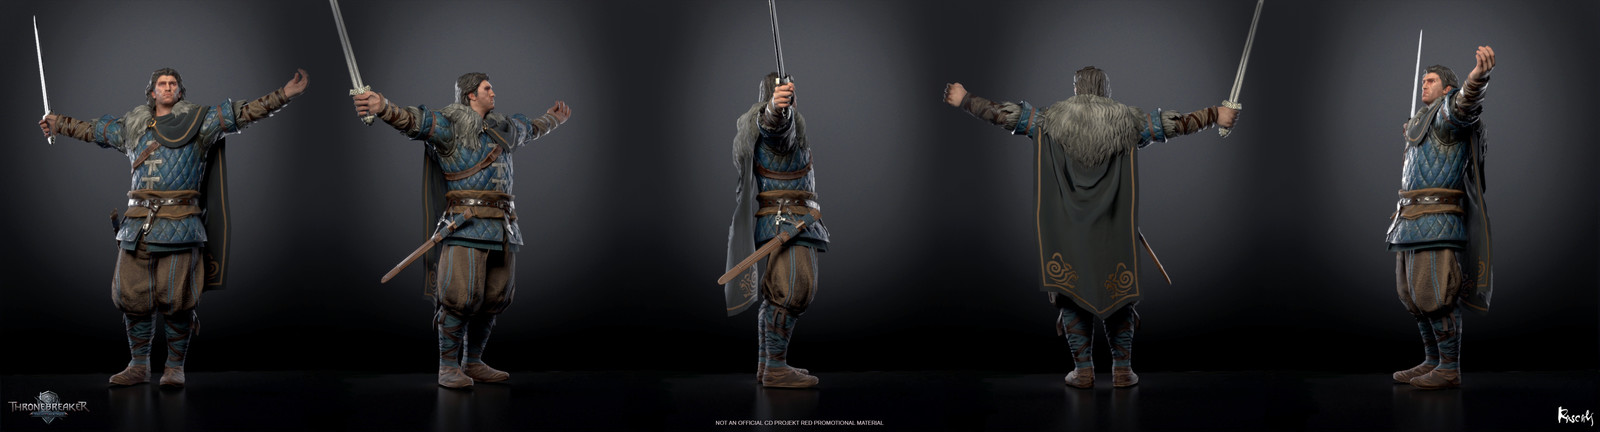 Artist: Jaro Pijacek, Art Director: Roman Mindek, Producer: Tom Roller.  Poses created from rigs and animation by CD PROJEKT RED. Check out more from Rascals at www.rascals.studio